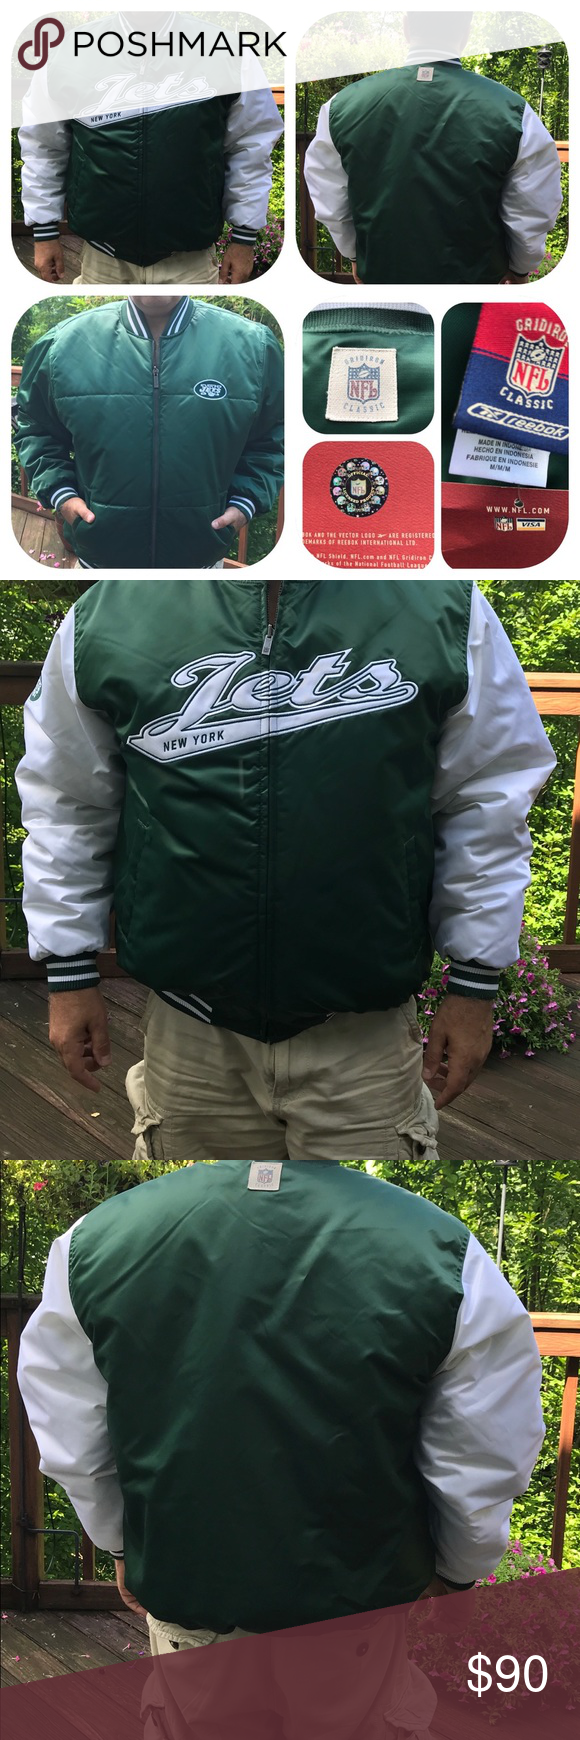 huge discount 7b6a3 b7137 Men's NY Jets Winter jacket. Brand New Men's NY Jets Winter ...